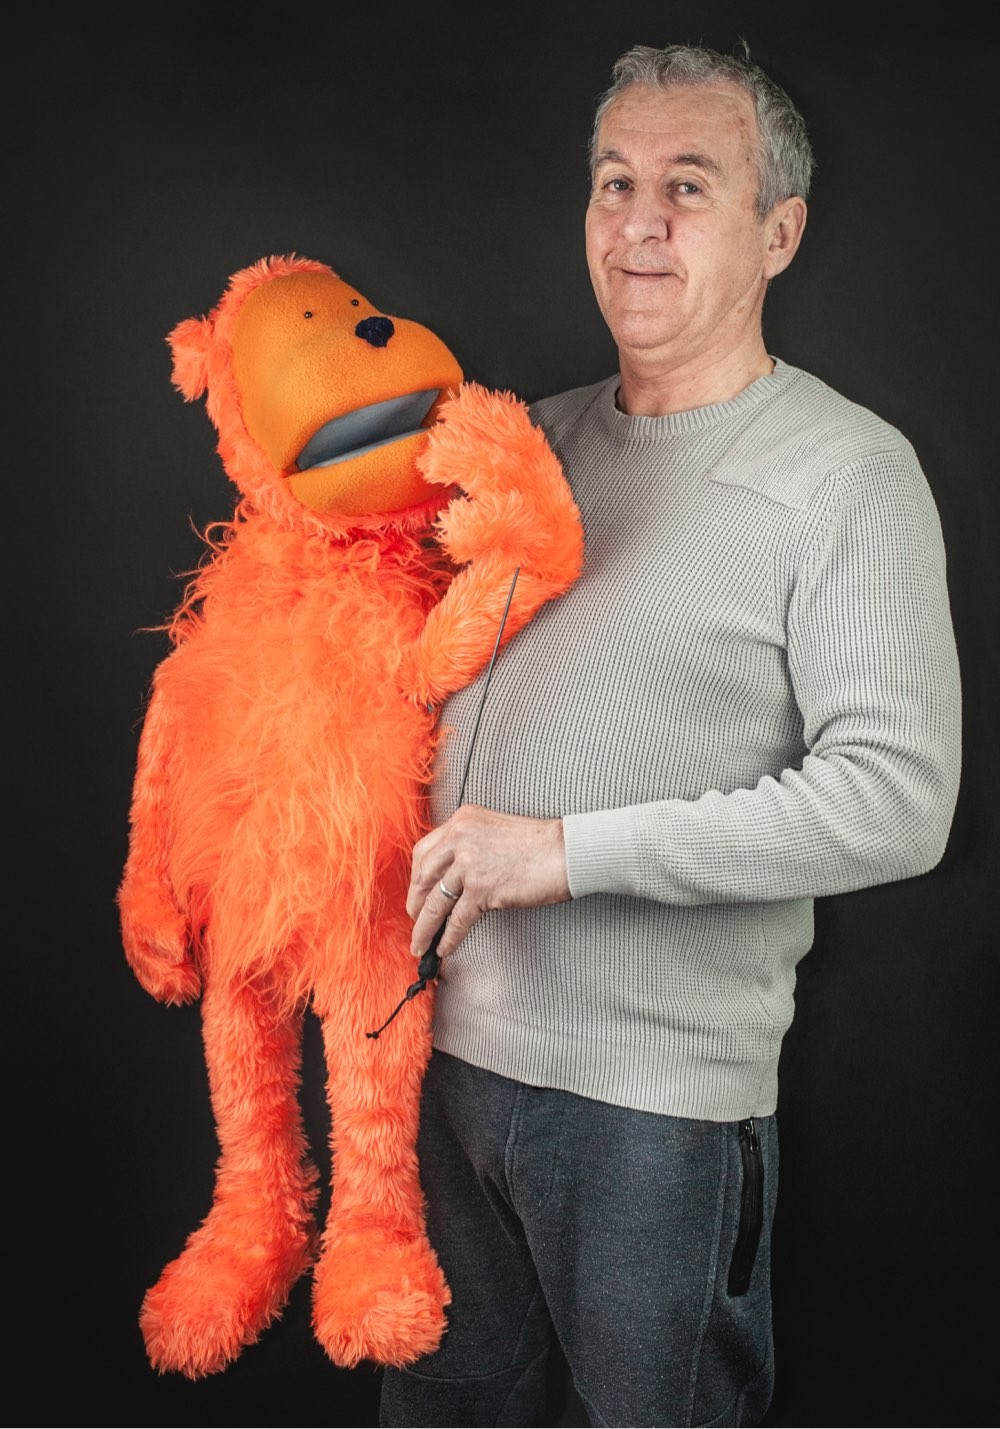 Puppet maker Sean Morrissey with the Crisis Advisor